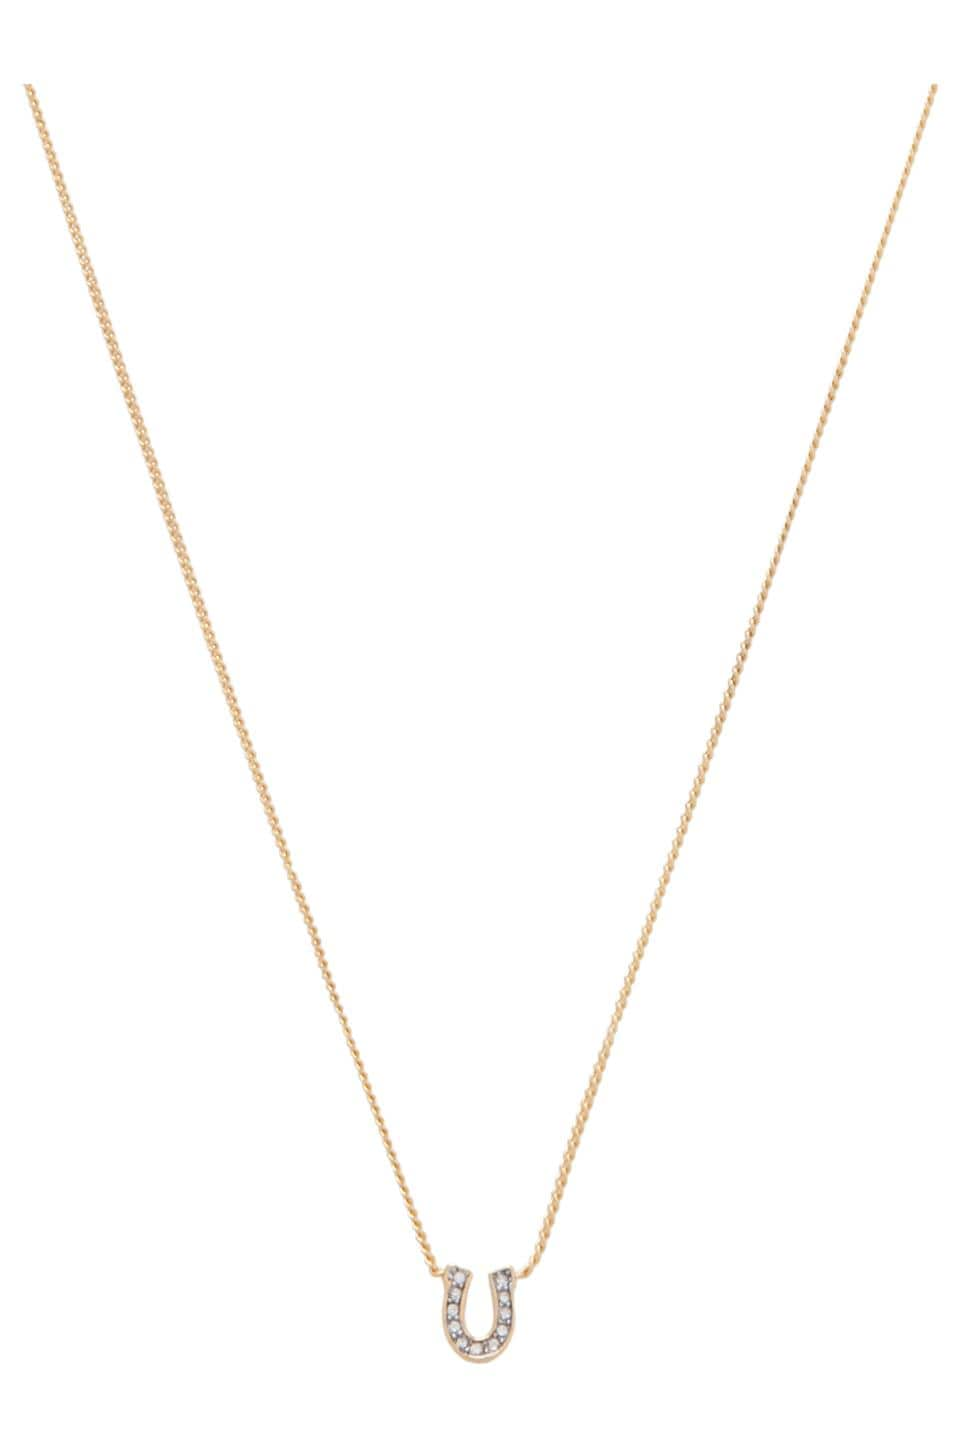 Juicy Couture Charm Minis Pave Horseshoe Necklace in Gold